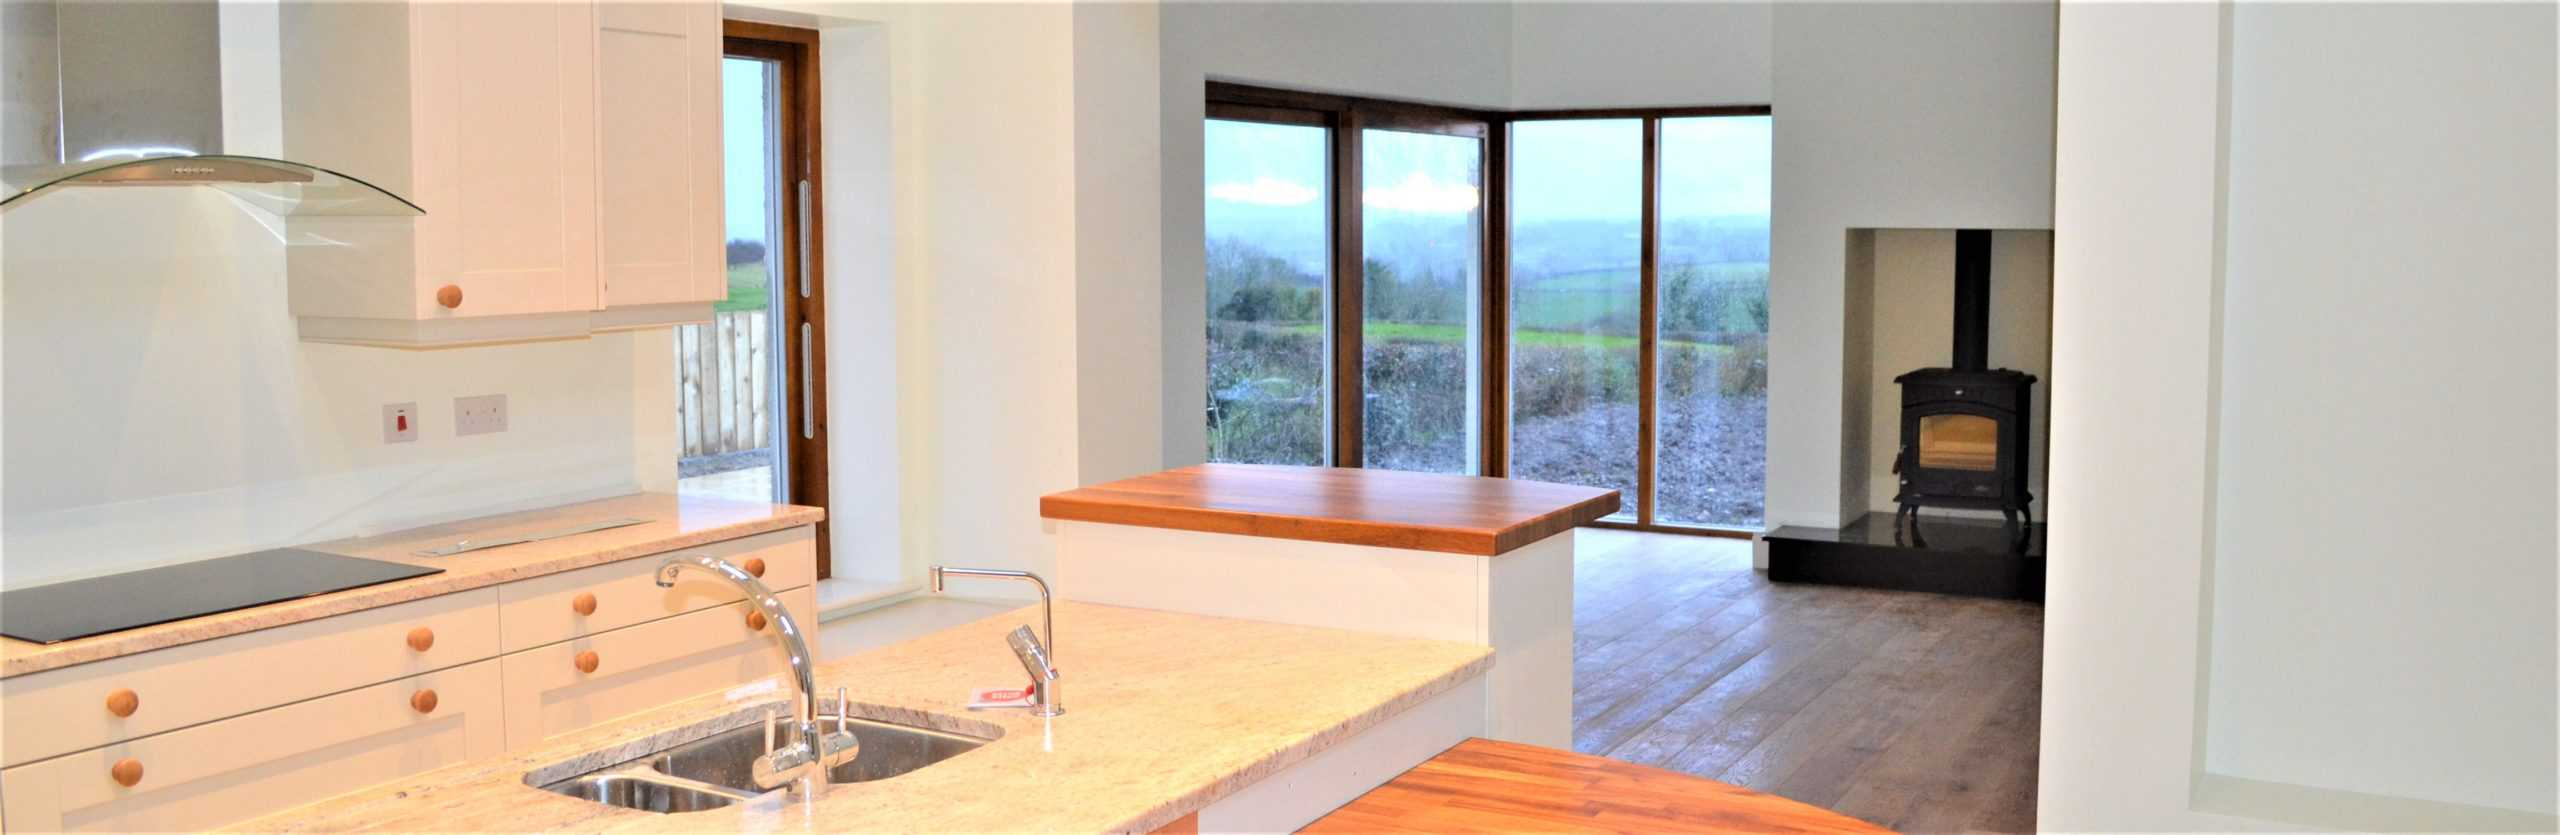 Quigg Dwelling - View From Kitchen Island Into Snug